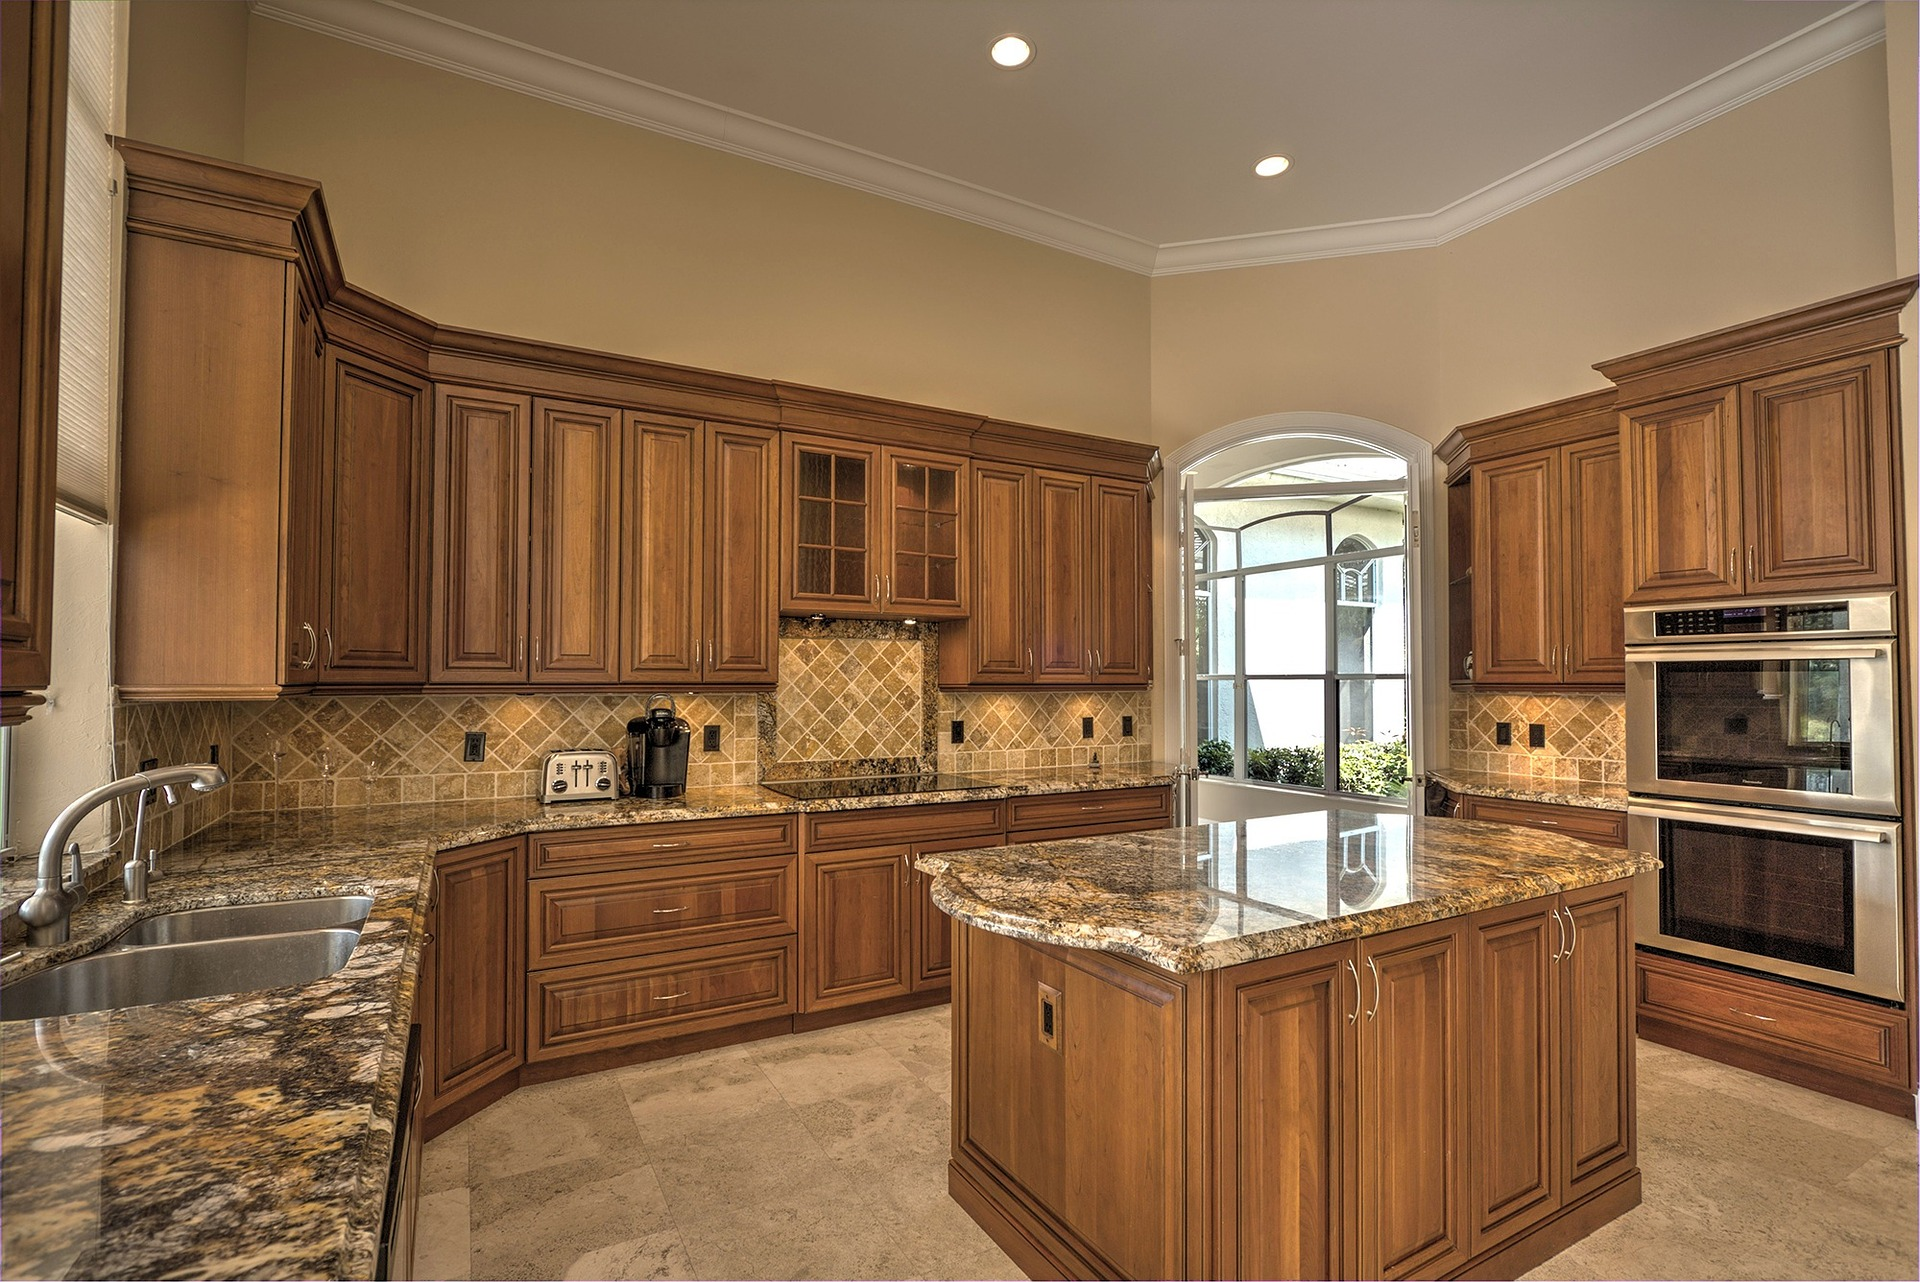 luxury kitchen worktop-granite.jpg